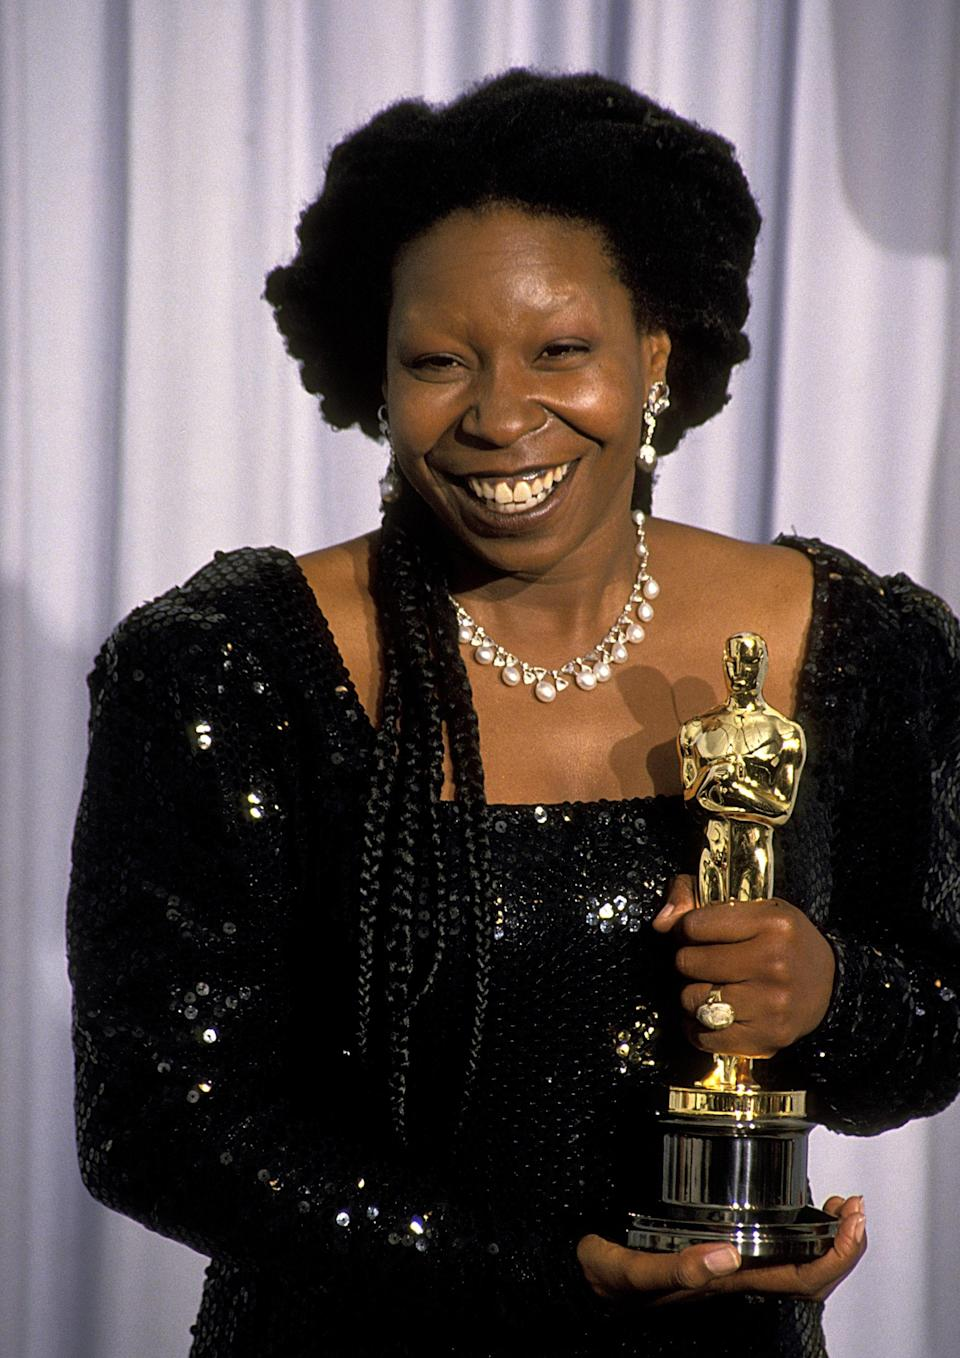 """It's hard to imagine that Whoopi Goldberg was born anything other than, well, Whoopi Goldberg, but it's true: Her birth name is Caryn Elaine Johnson. In 2006 she explained that the stage name actually comes from a whoopee cushion. """"When you're performing on stage, you never really have time to go into the bathroom and close the door,"""" she <a href=""""https://www.nytimes.com/2006/08/20/magazine/20wwln_q4.html"""" rel=""""nofollow noopener"""" target=""""_blank"""" data-ylk=""""slk:told The New York Times"""" class=""""link rapid-noclick-resp"""">told <em>The New York Times</em></a><em>.</em> """"So if you get a little gassy, you've got to let it go. So people used to say to me, 'You're like a whoopee cushion.' And that's where the name came from."""""""